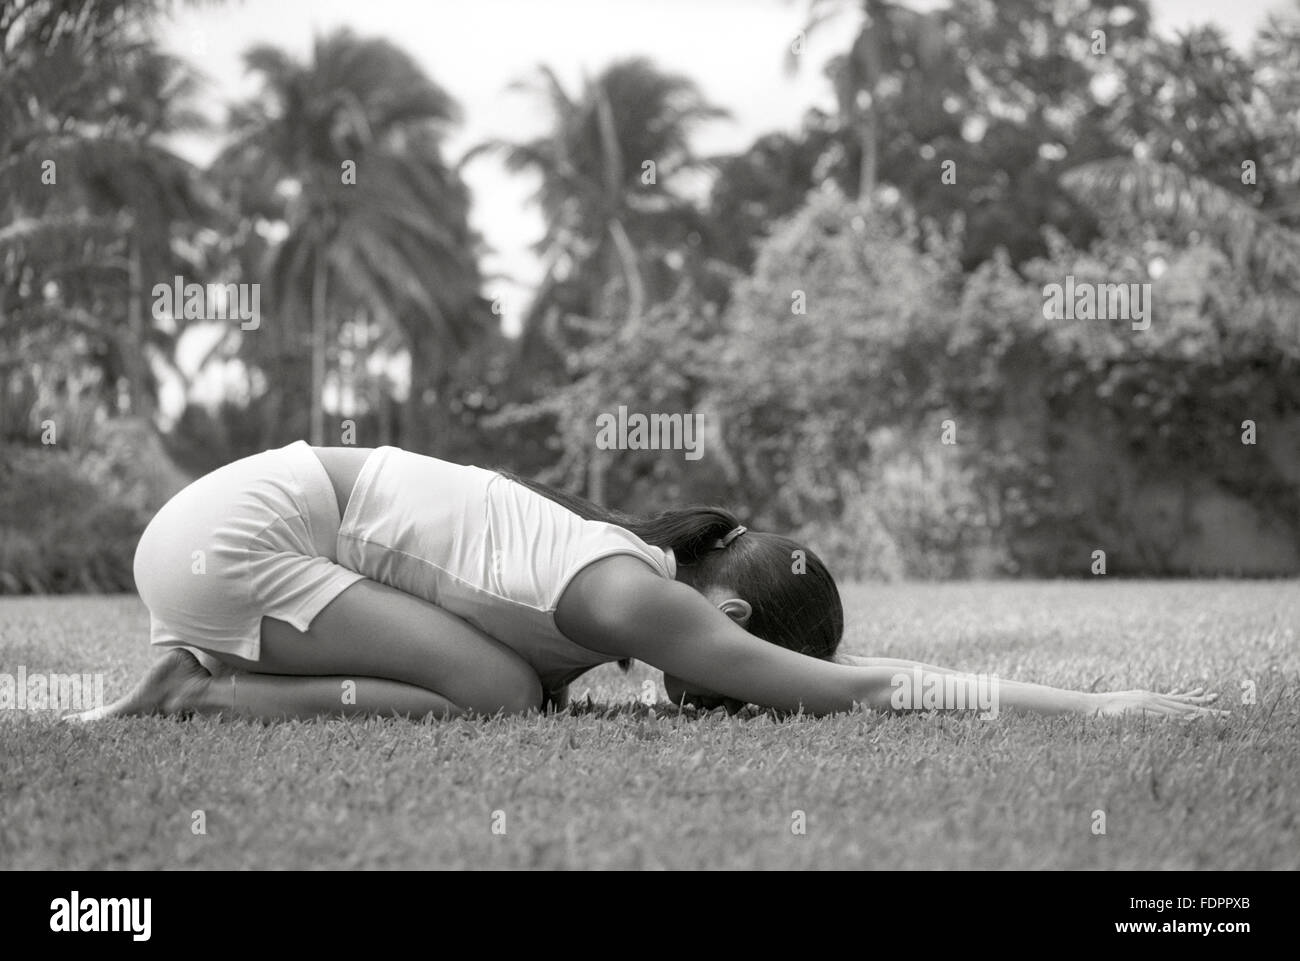 A woman doing a yoga pose outdoors at The Farm at San Benito, Philippines. Stock Photo